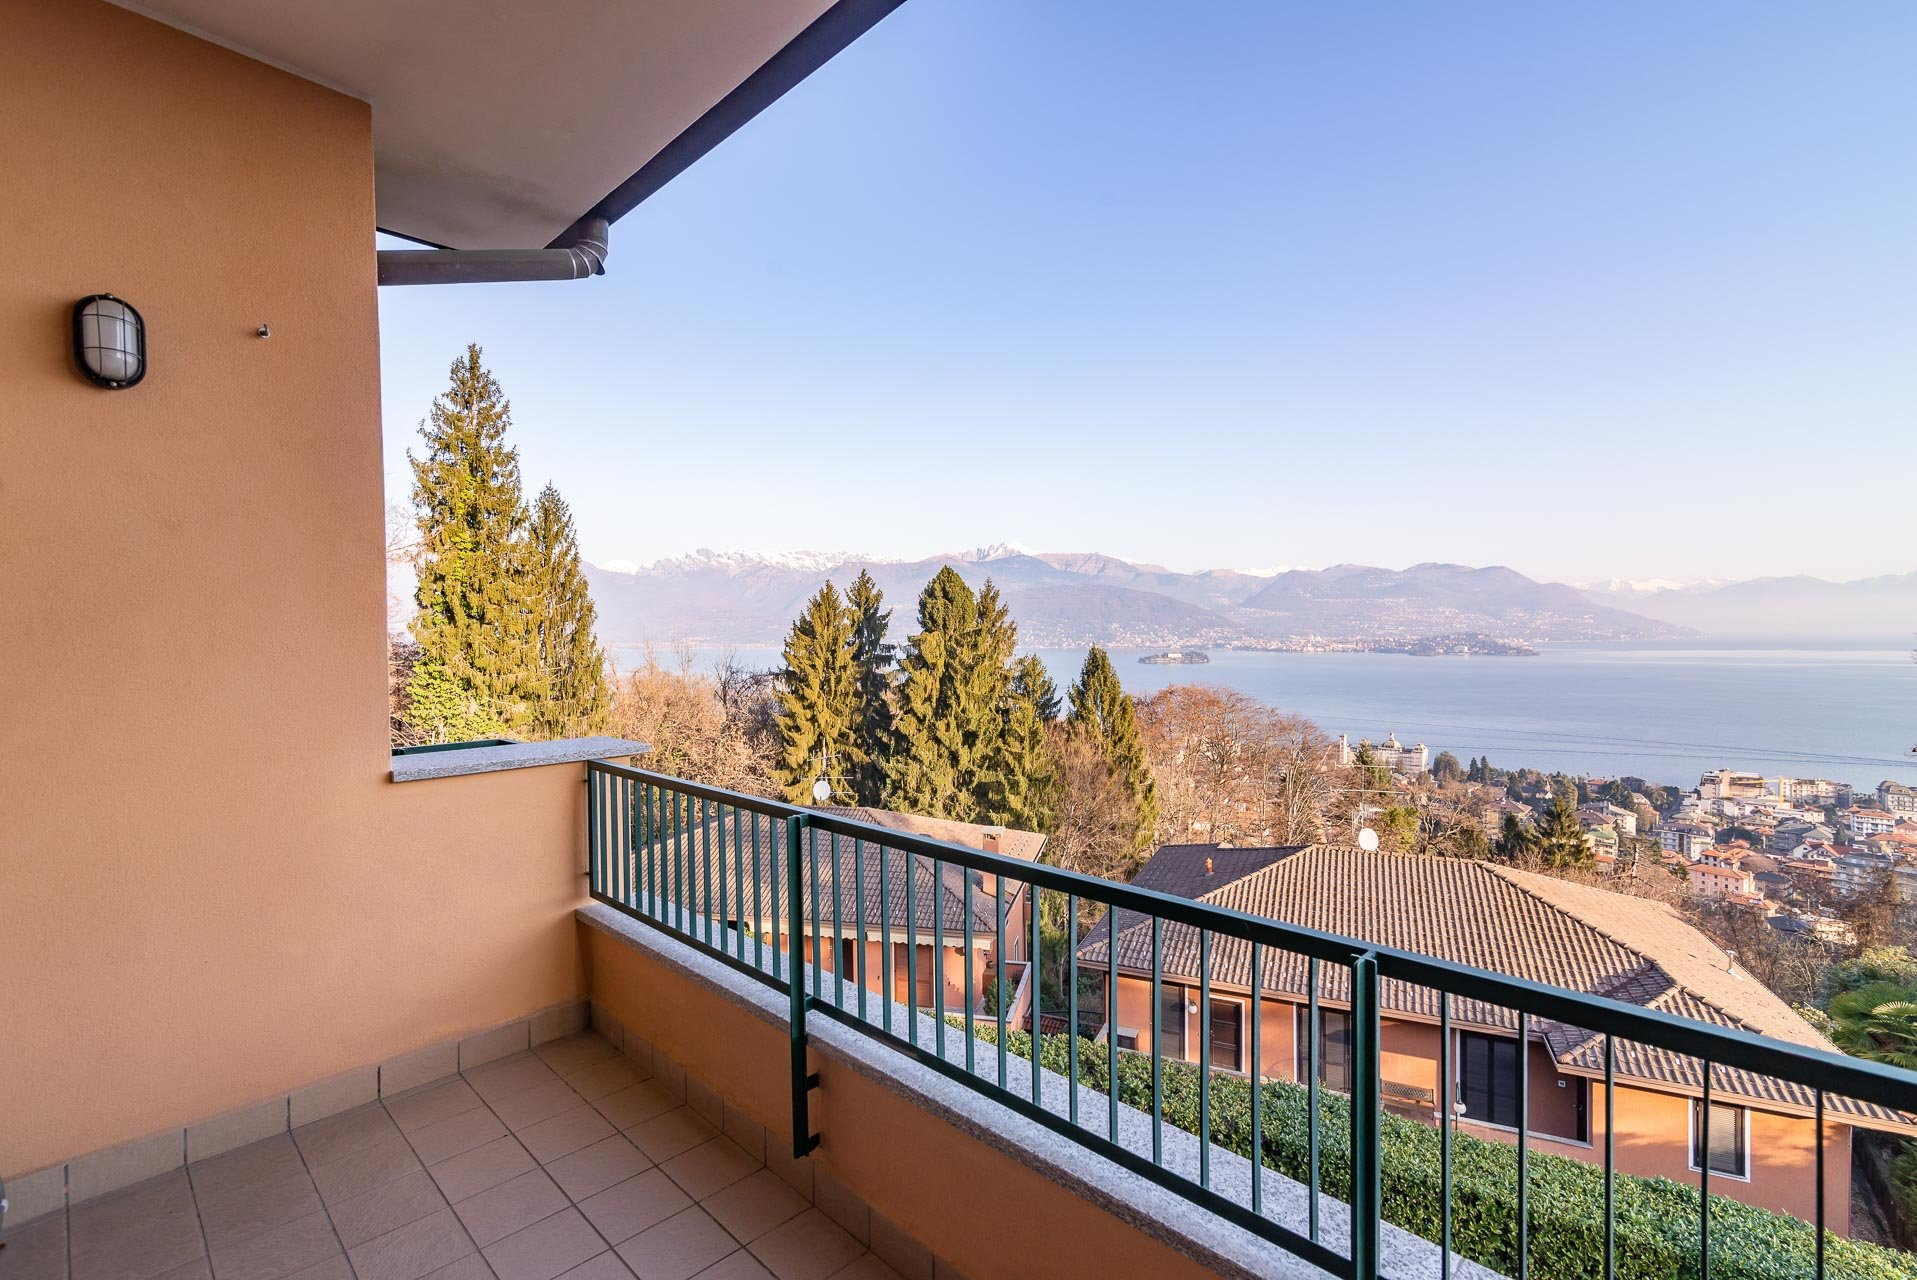 Apartment for sale in Stresa in a residence - terrace with lake view